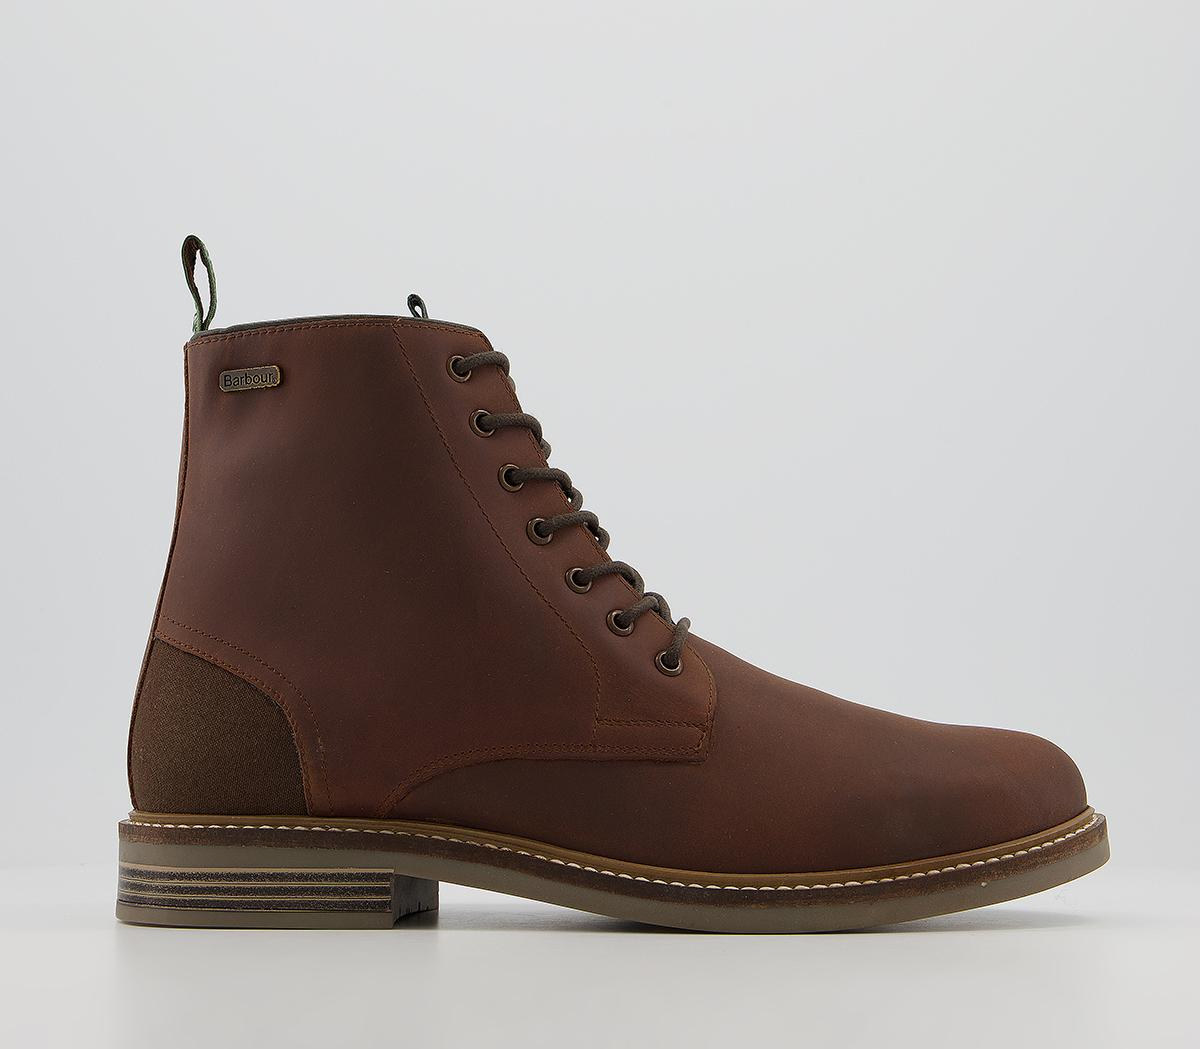 Seaham Lace Up Boots